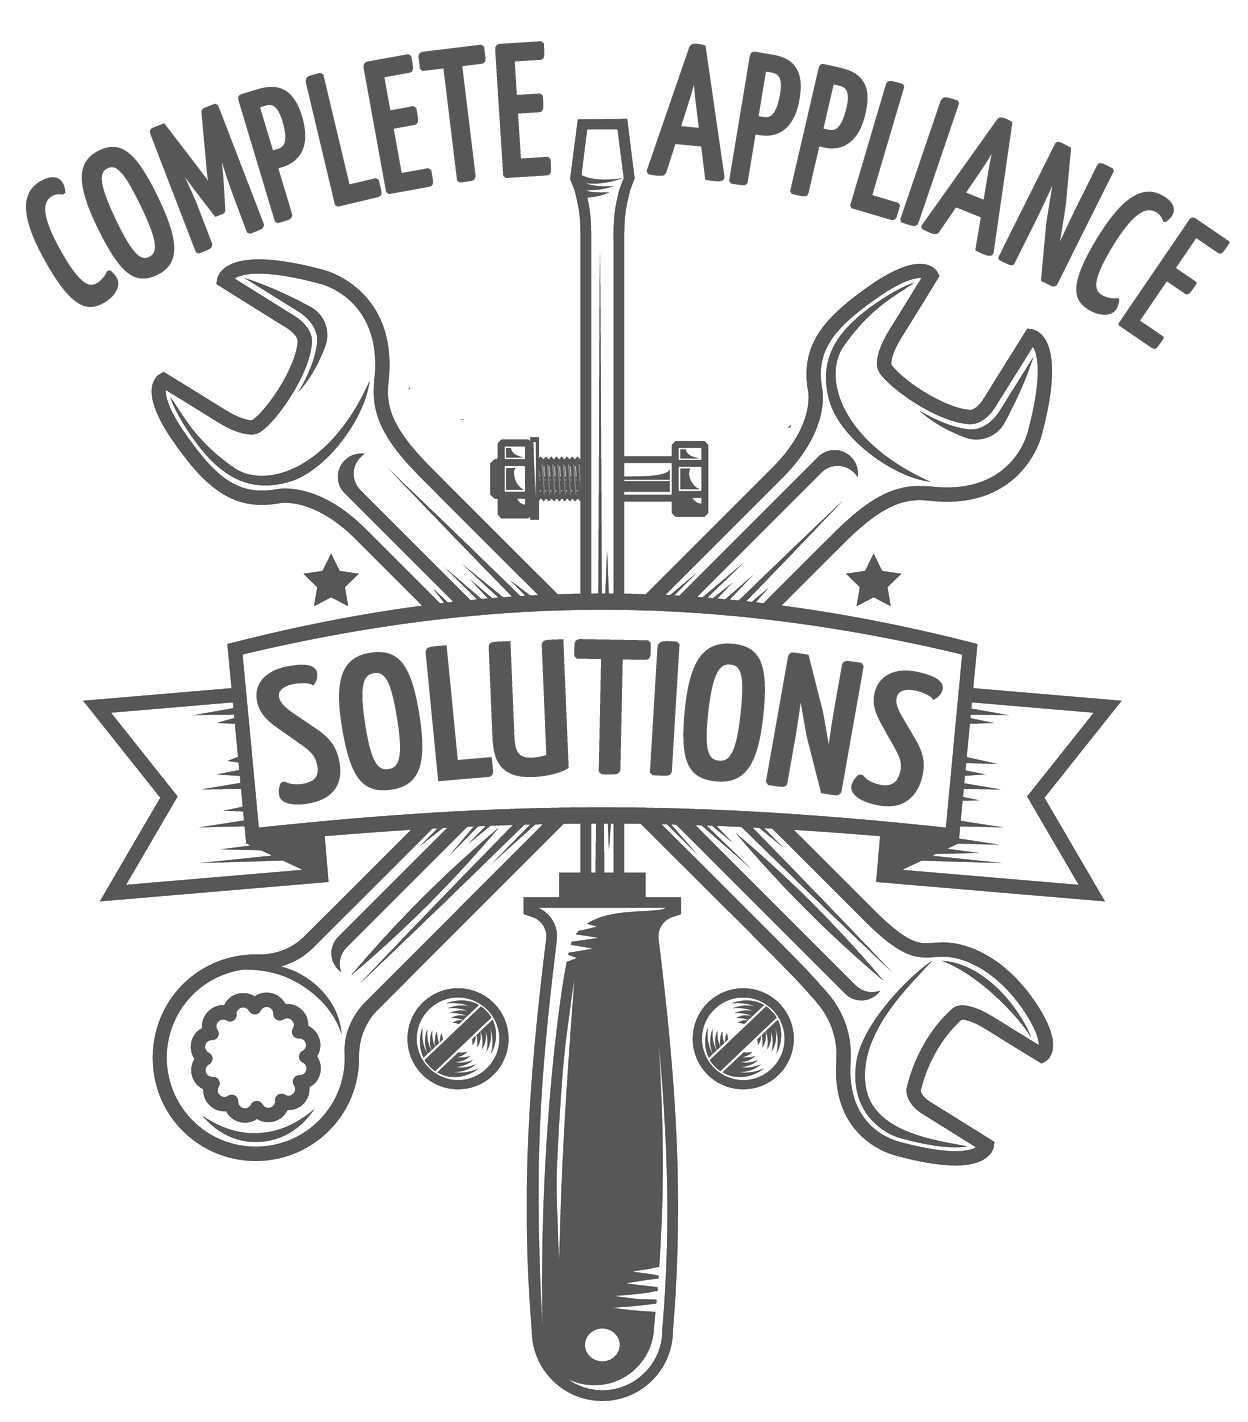 Complete Appliance Solutions